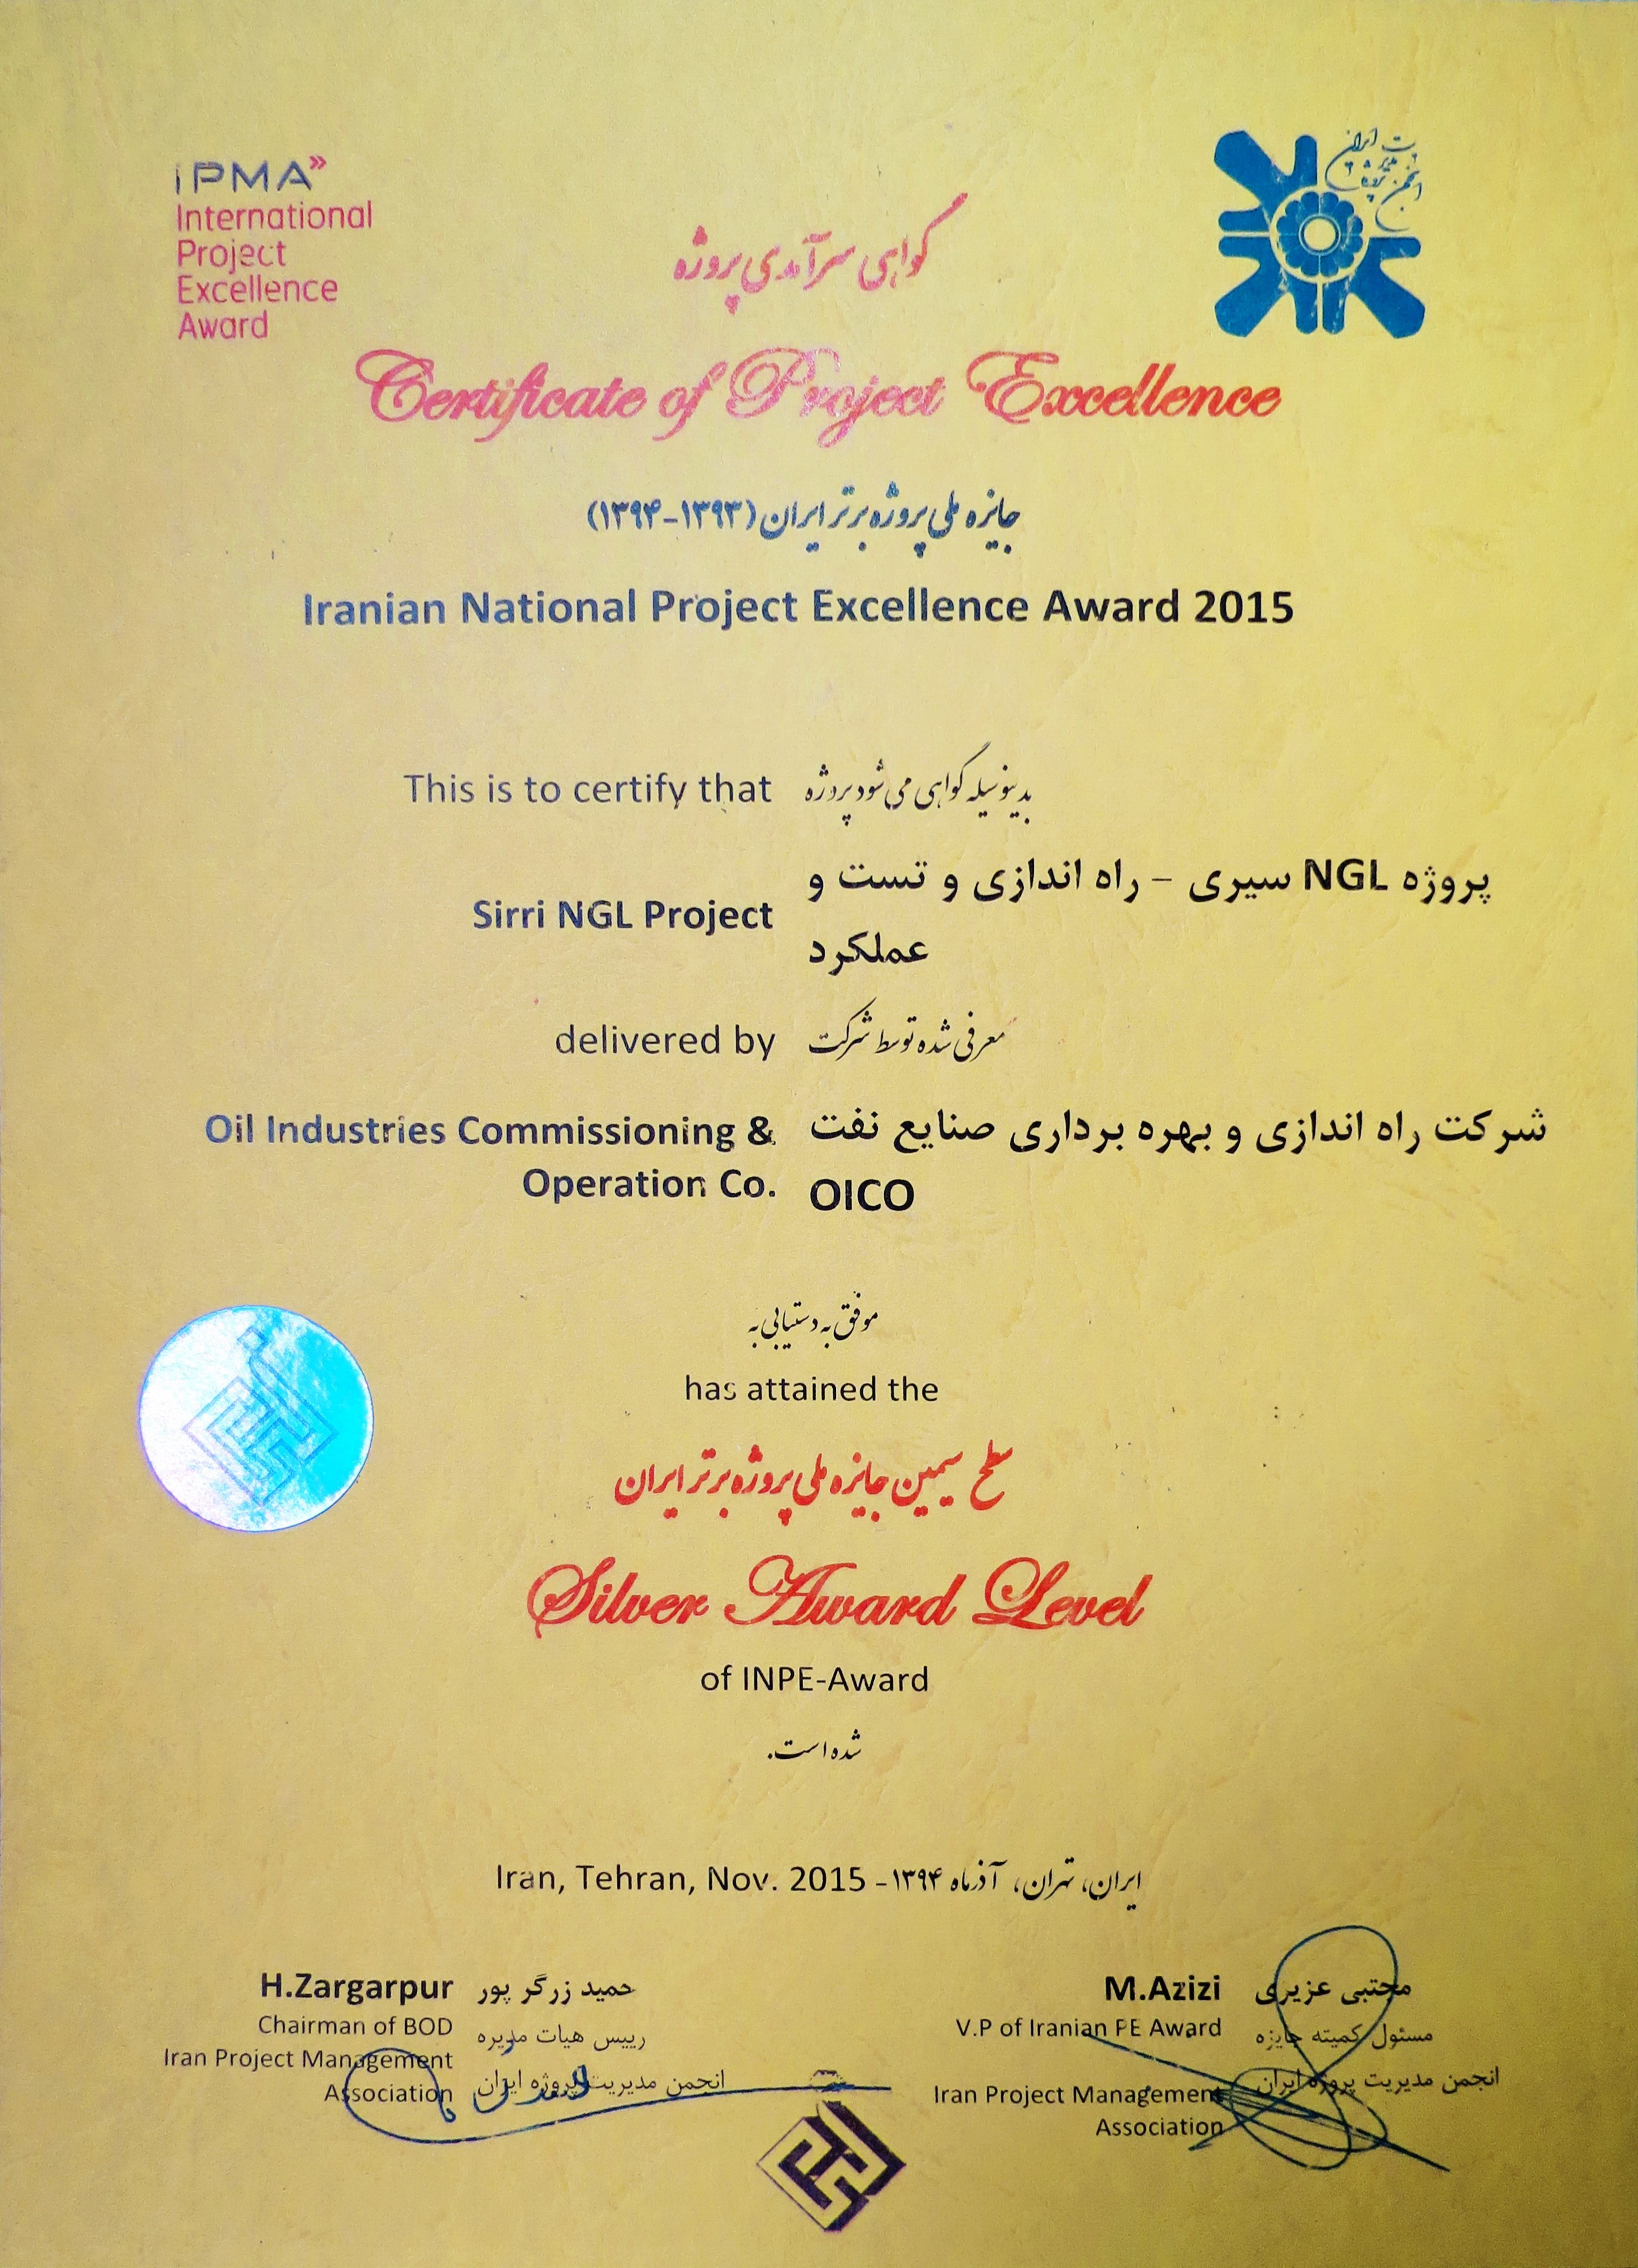 Oil industries commissioning and operation company oico ipma award certificate certificate of project excellence 1betcityfo Images